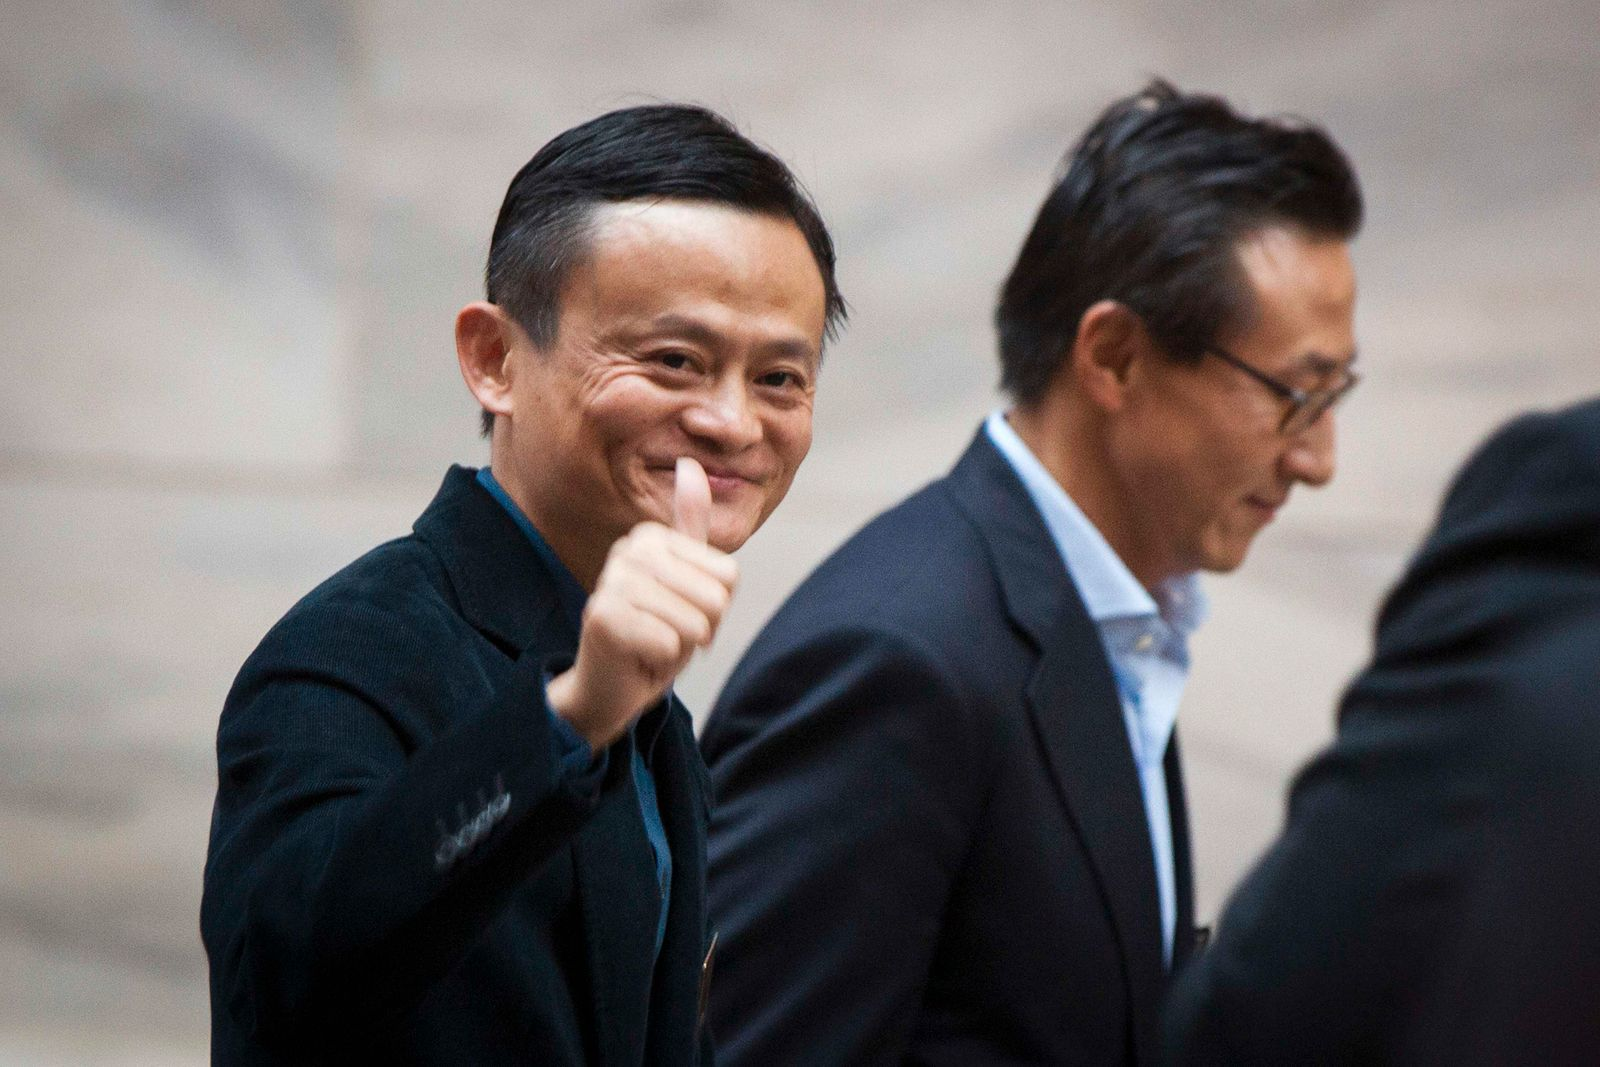 """Alibaba Group Holding Ltd founder Jack Ma gestures in front of the New York Stock Exchange before his company's initial public offering (IPO) under the ticker """"BABA"""" in New York"""